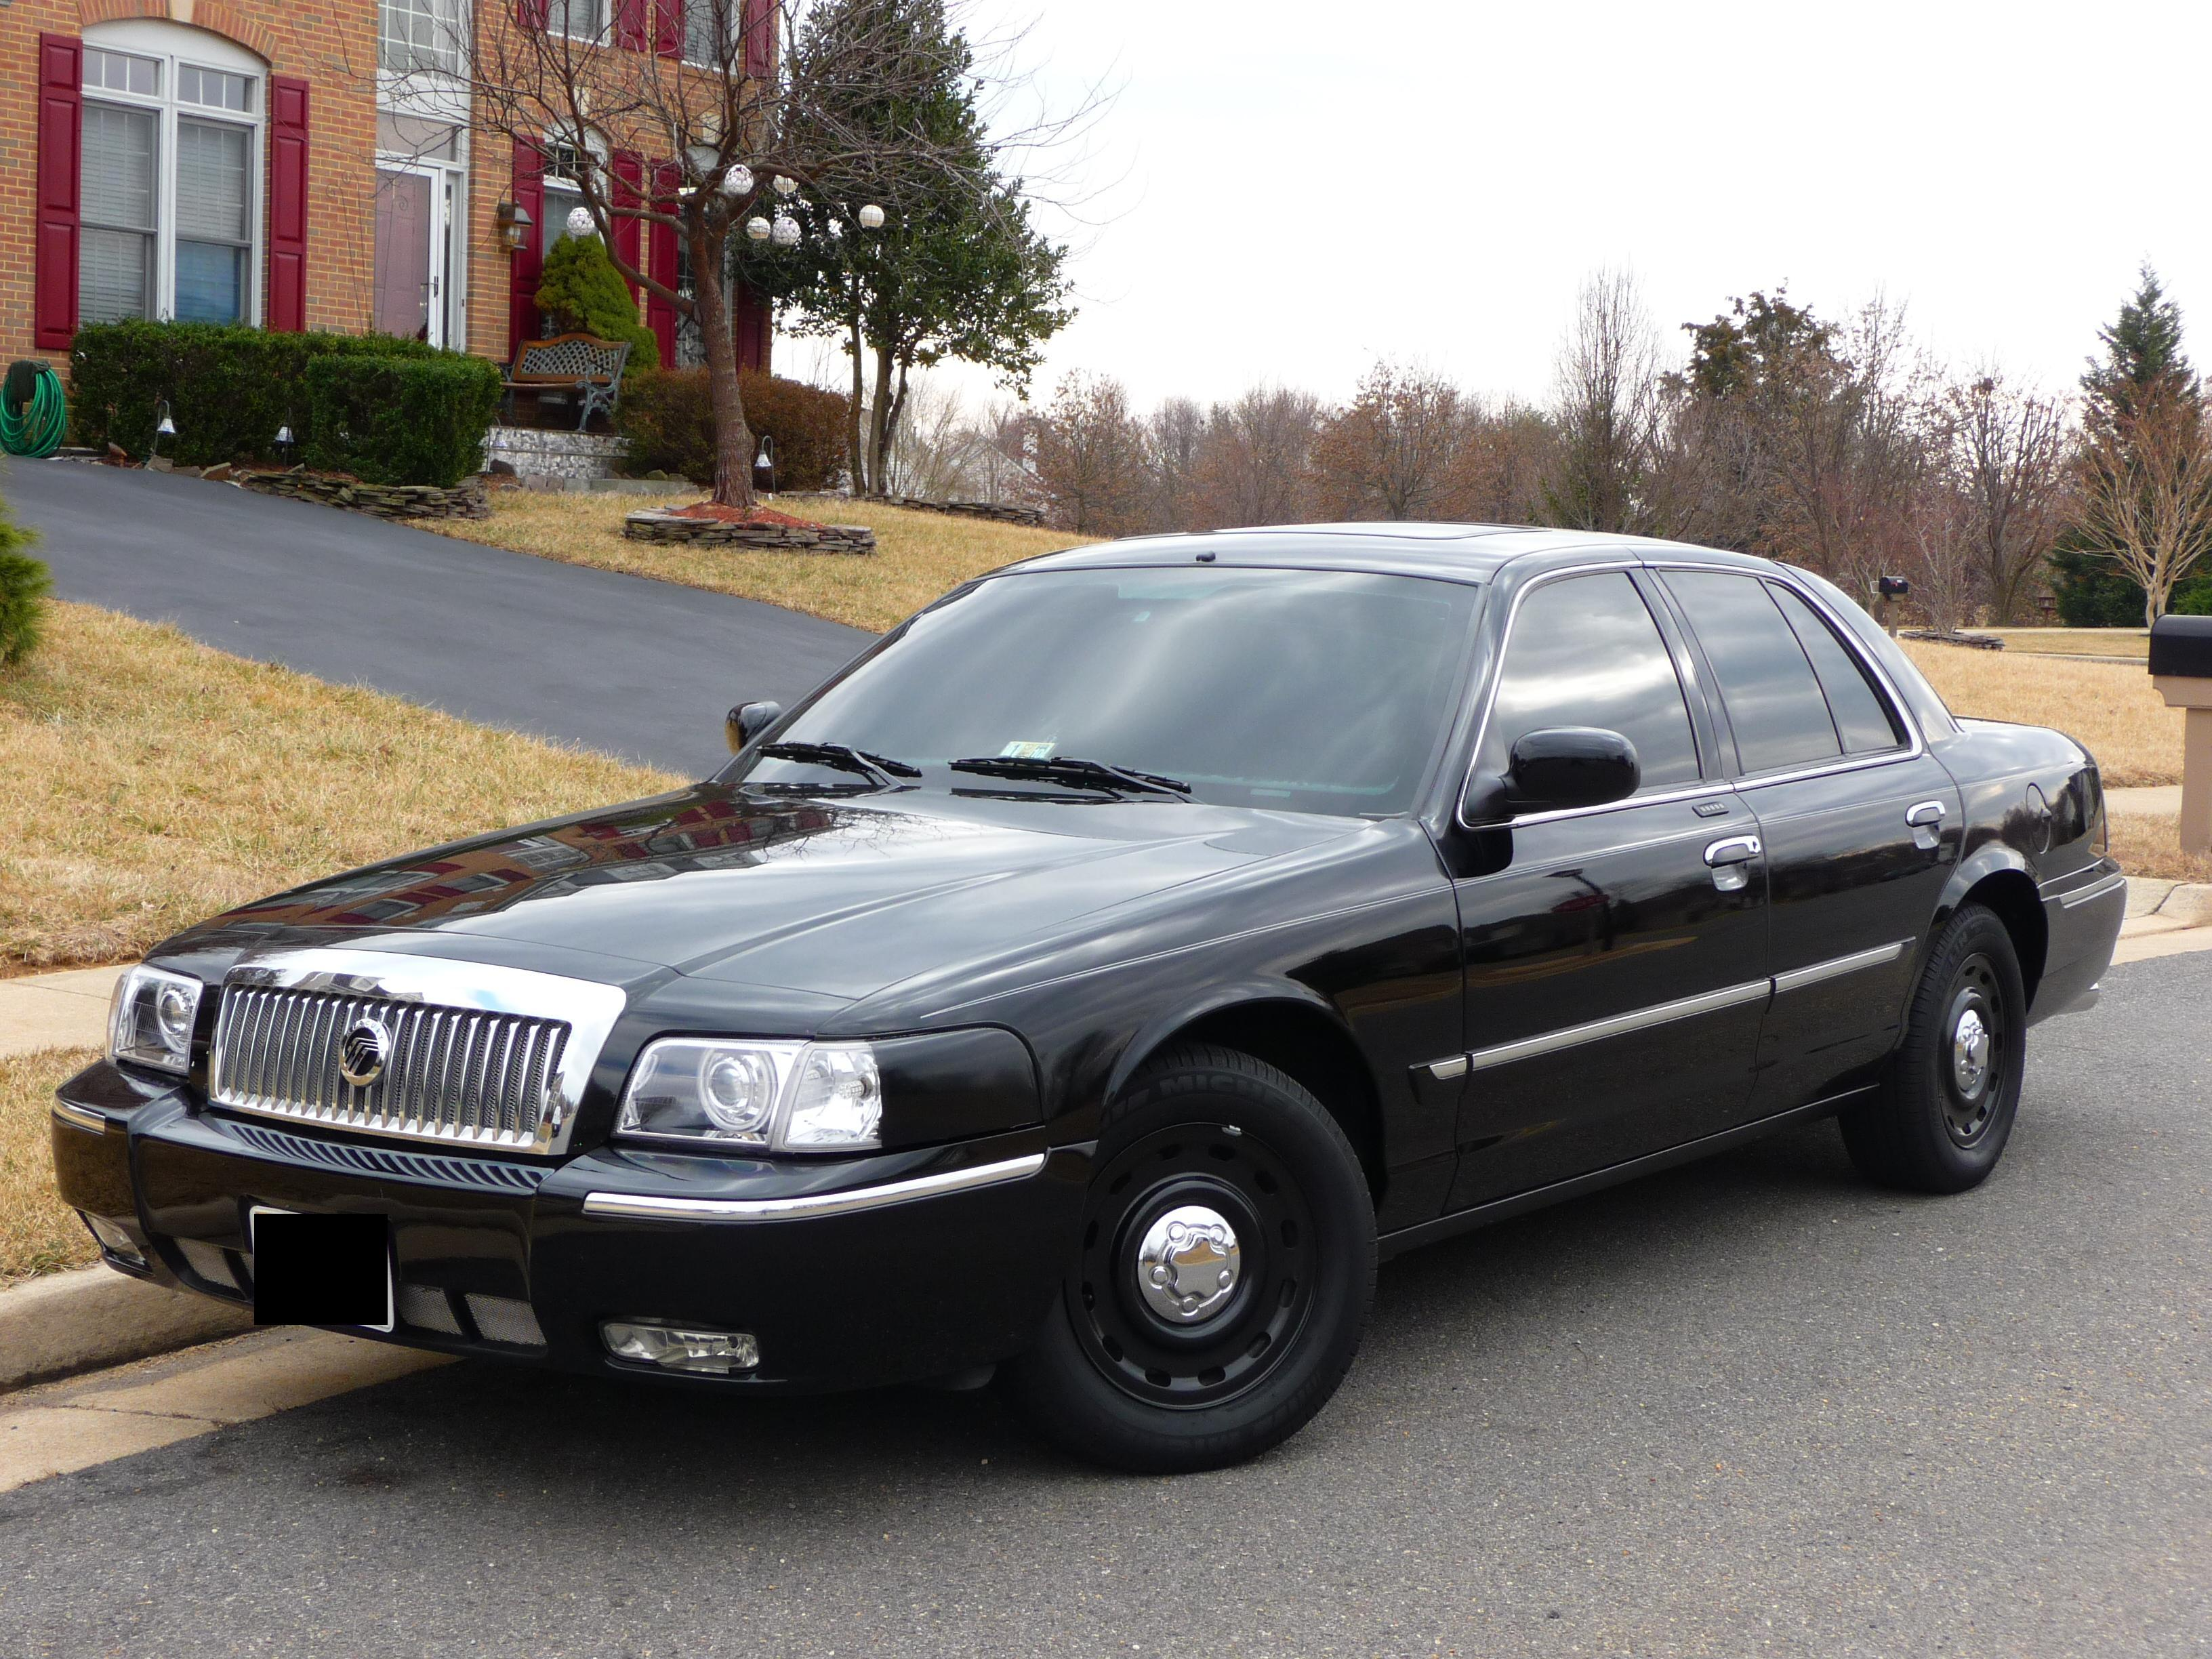 2007 Mercury Grand Marquis #14